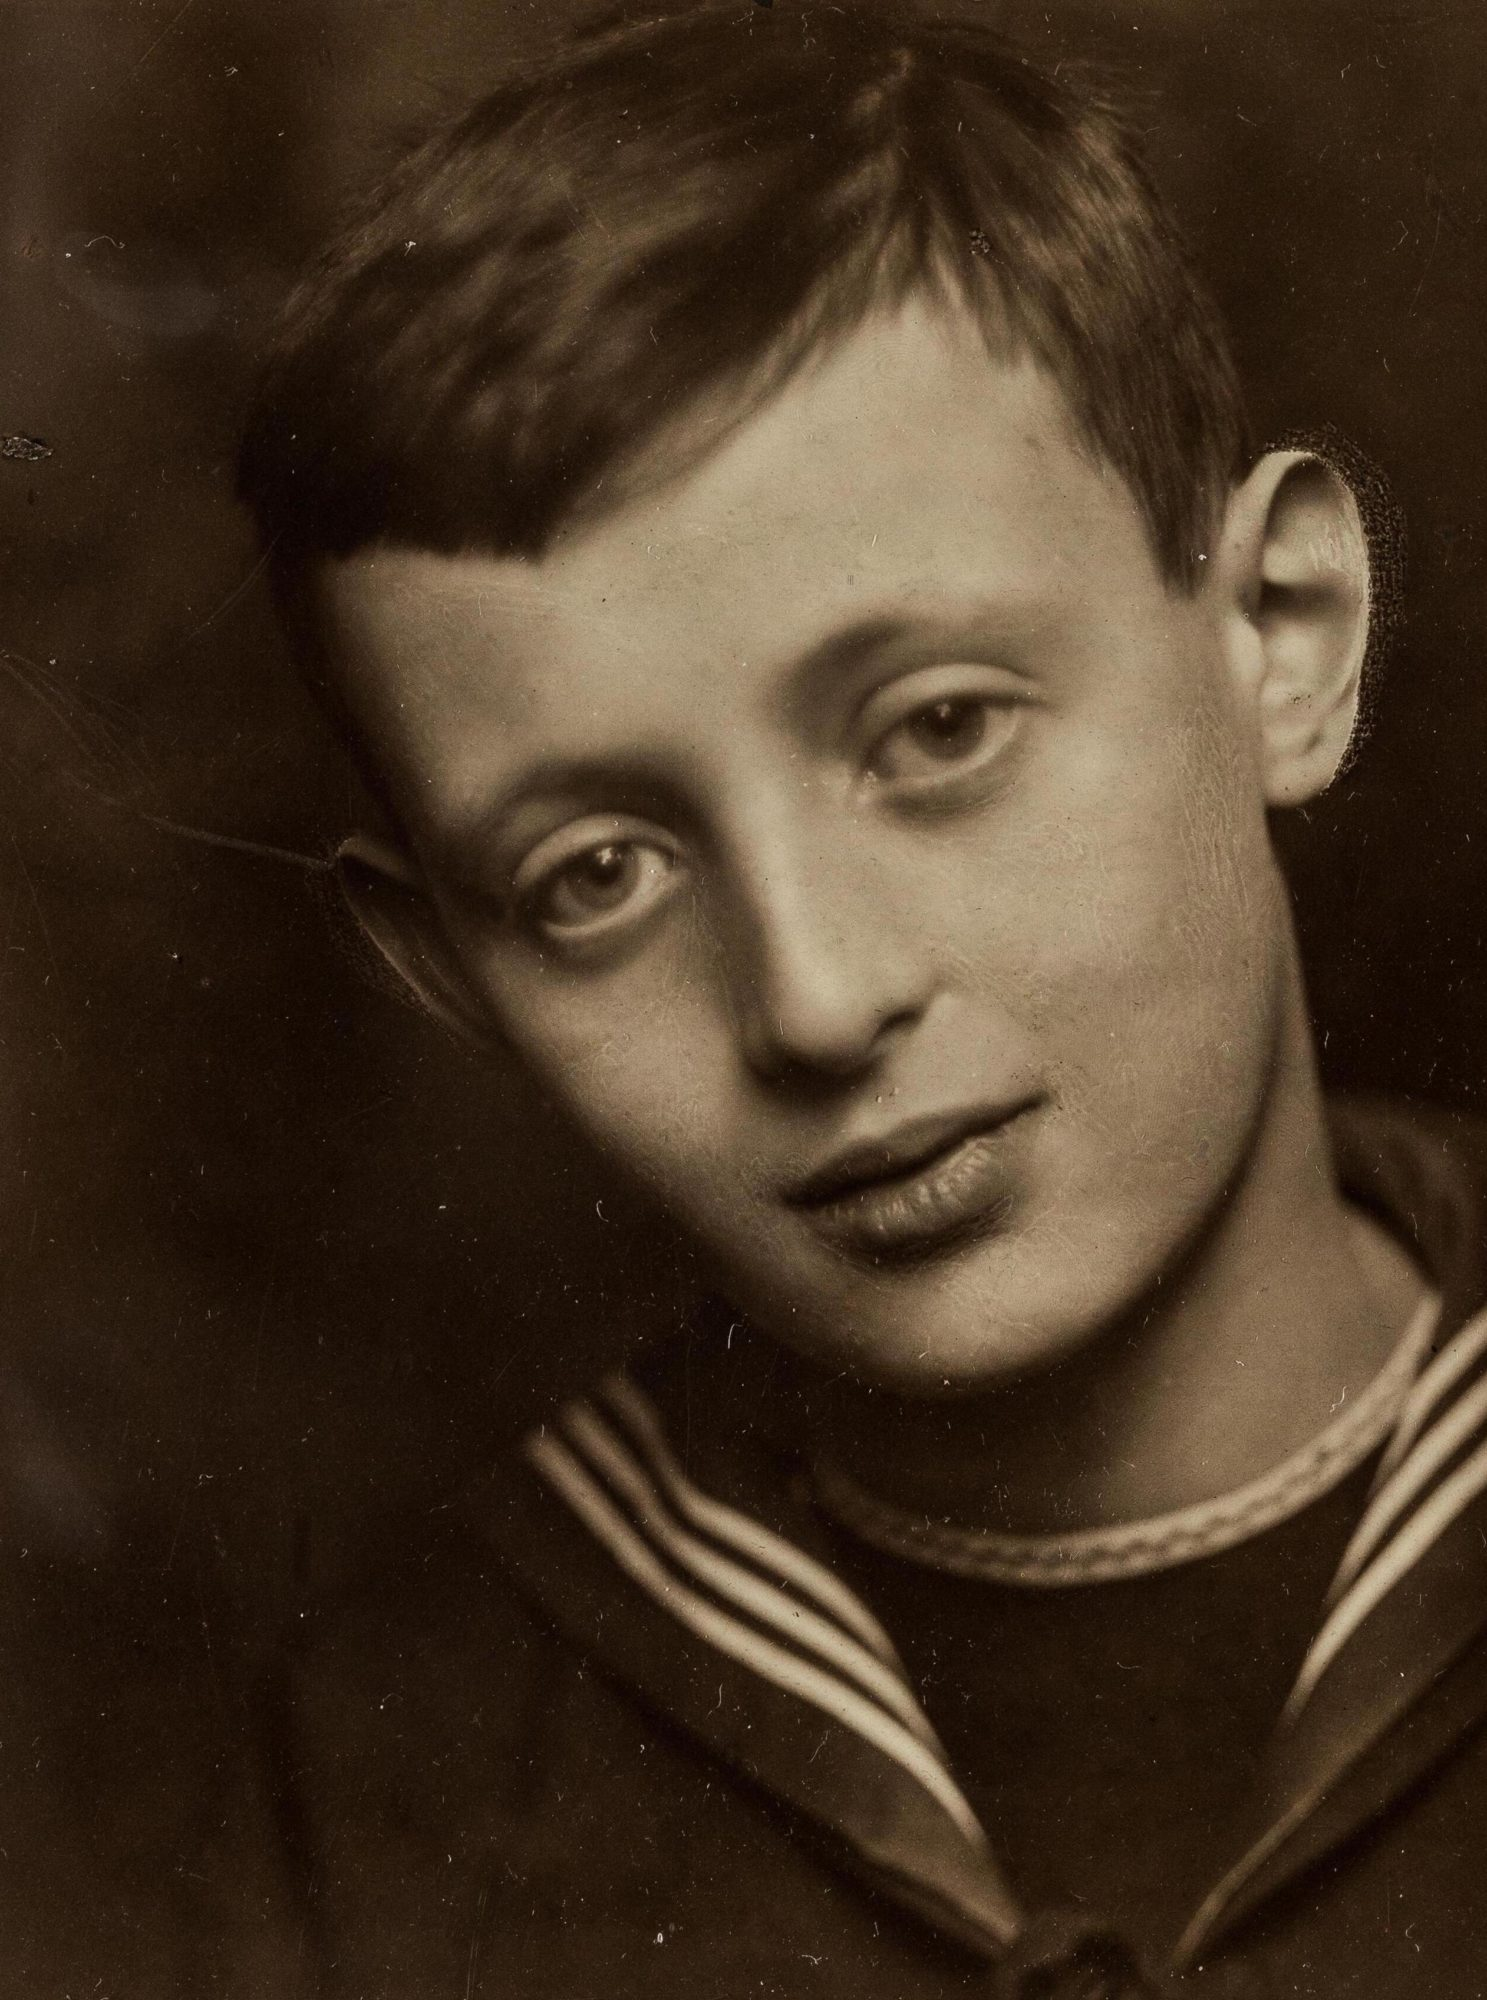 Photograph of Klein's son Hans as a child